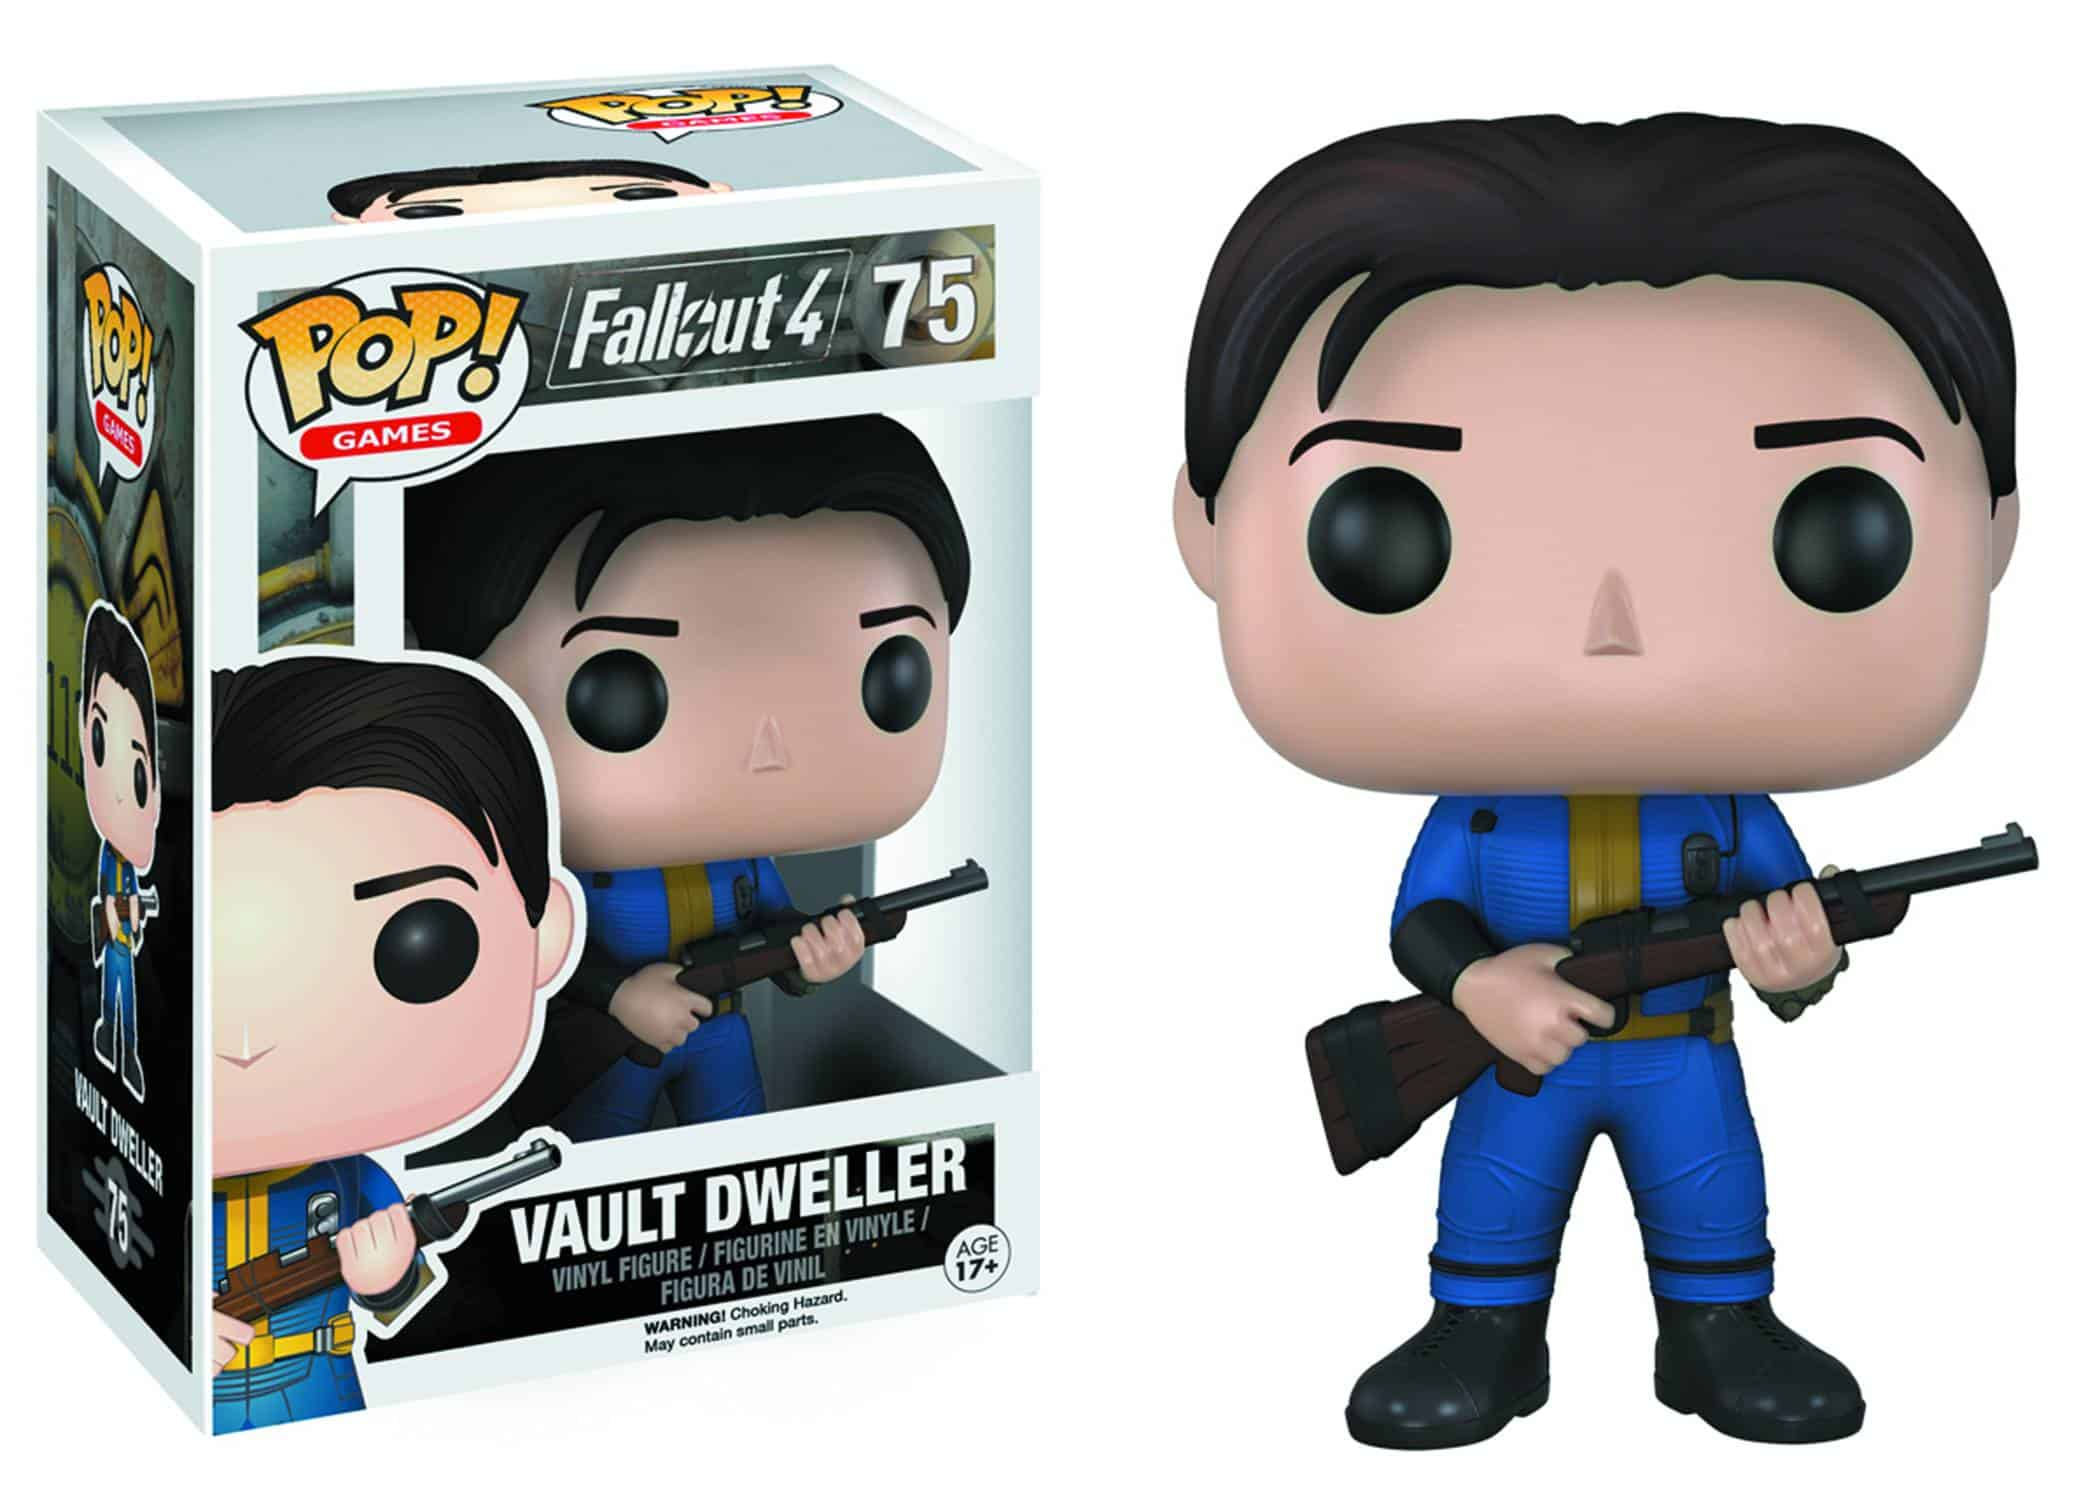 SOLE SURVIVOR VAULT DWELLER FIG.10 CM VINYL POP FALLOUT 4